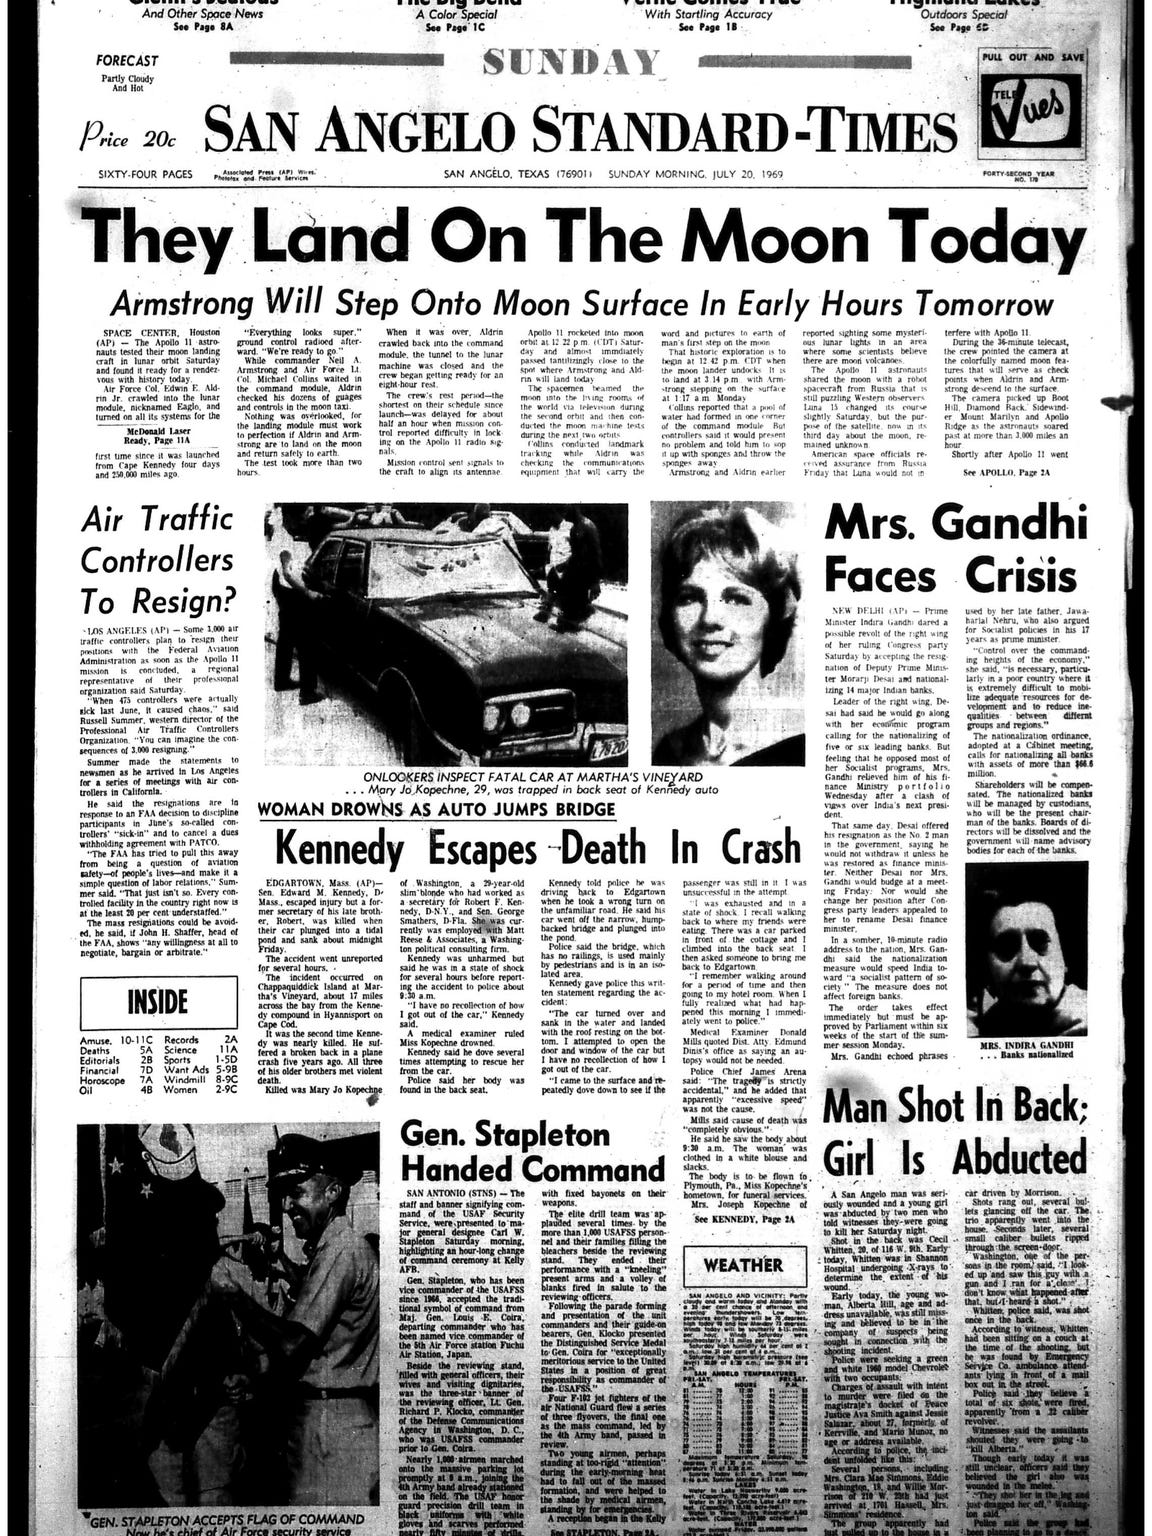 On Sunday, July 20, 1969, the Standard-Times announced the impending moon landing of Apollo 11.